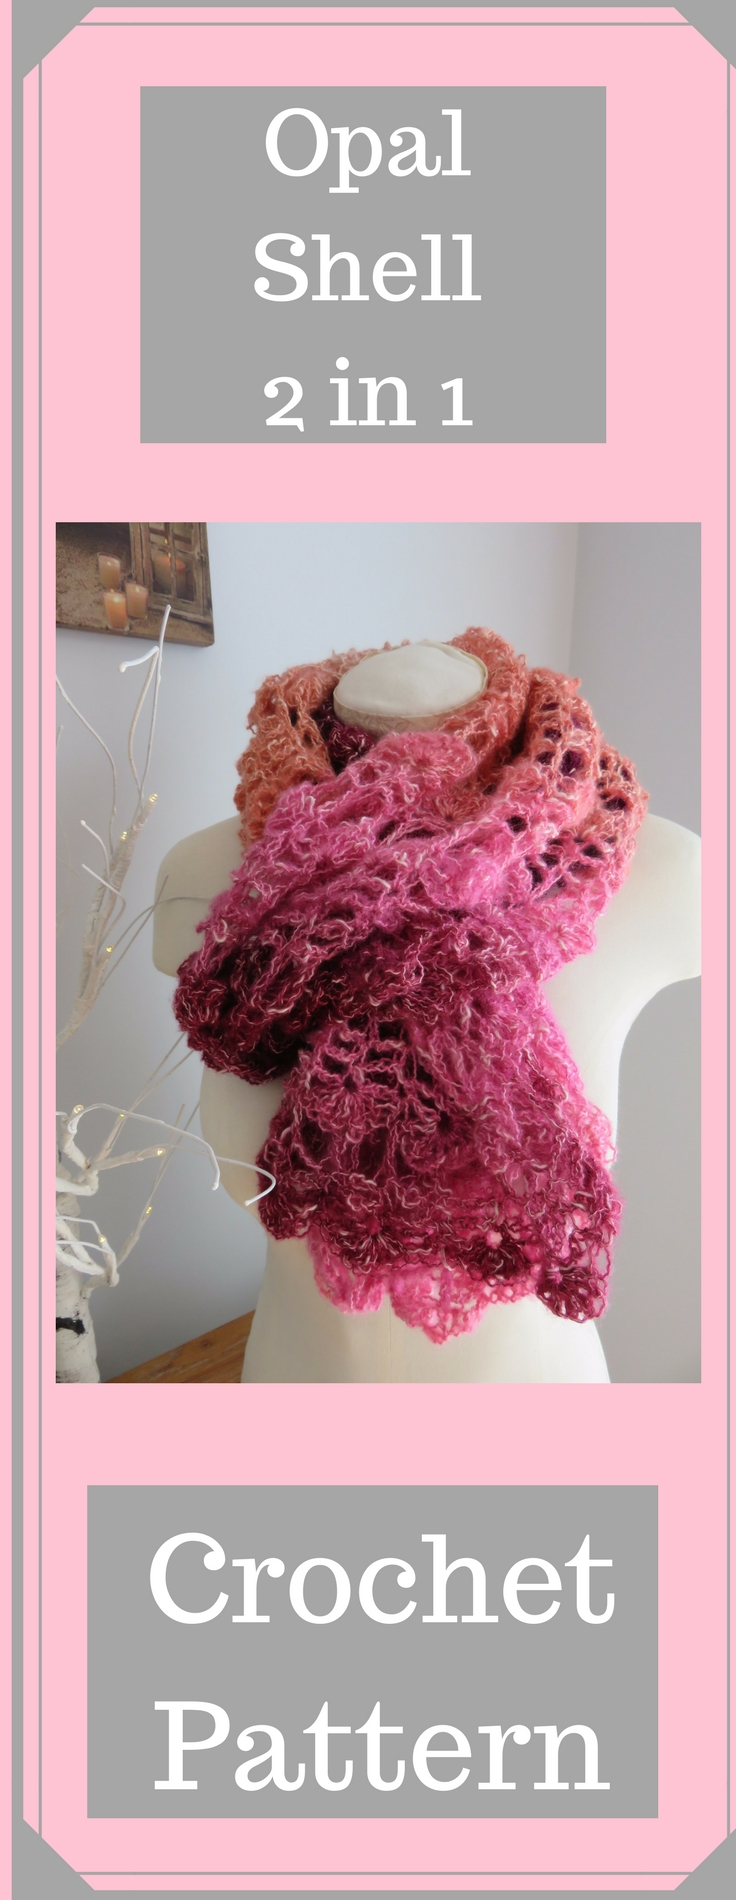 Opal Shell 2 in 1 Crochet Wrap and Scarf from Crochet247